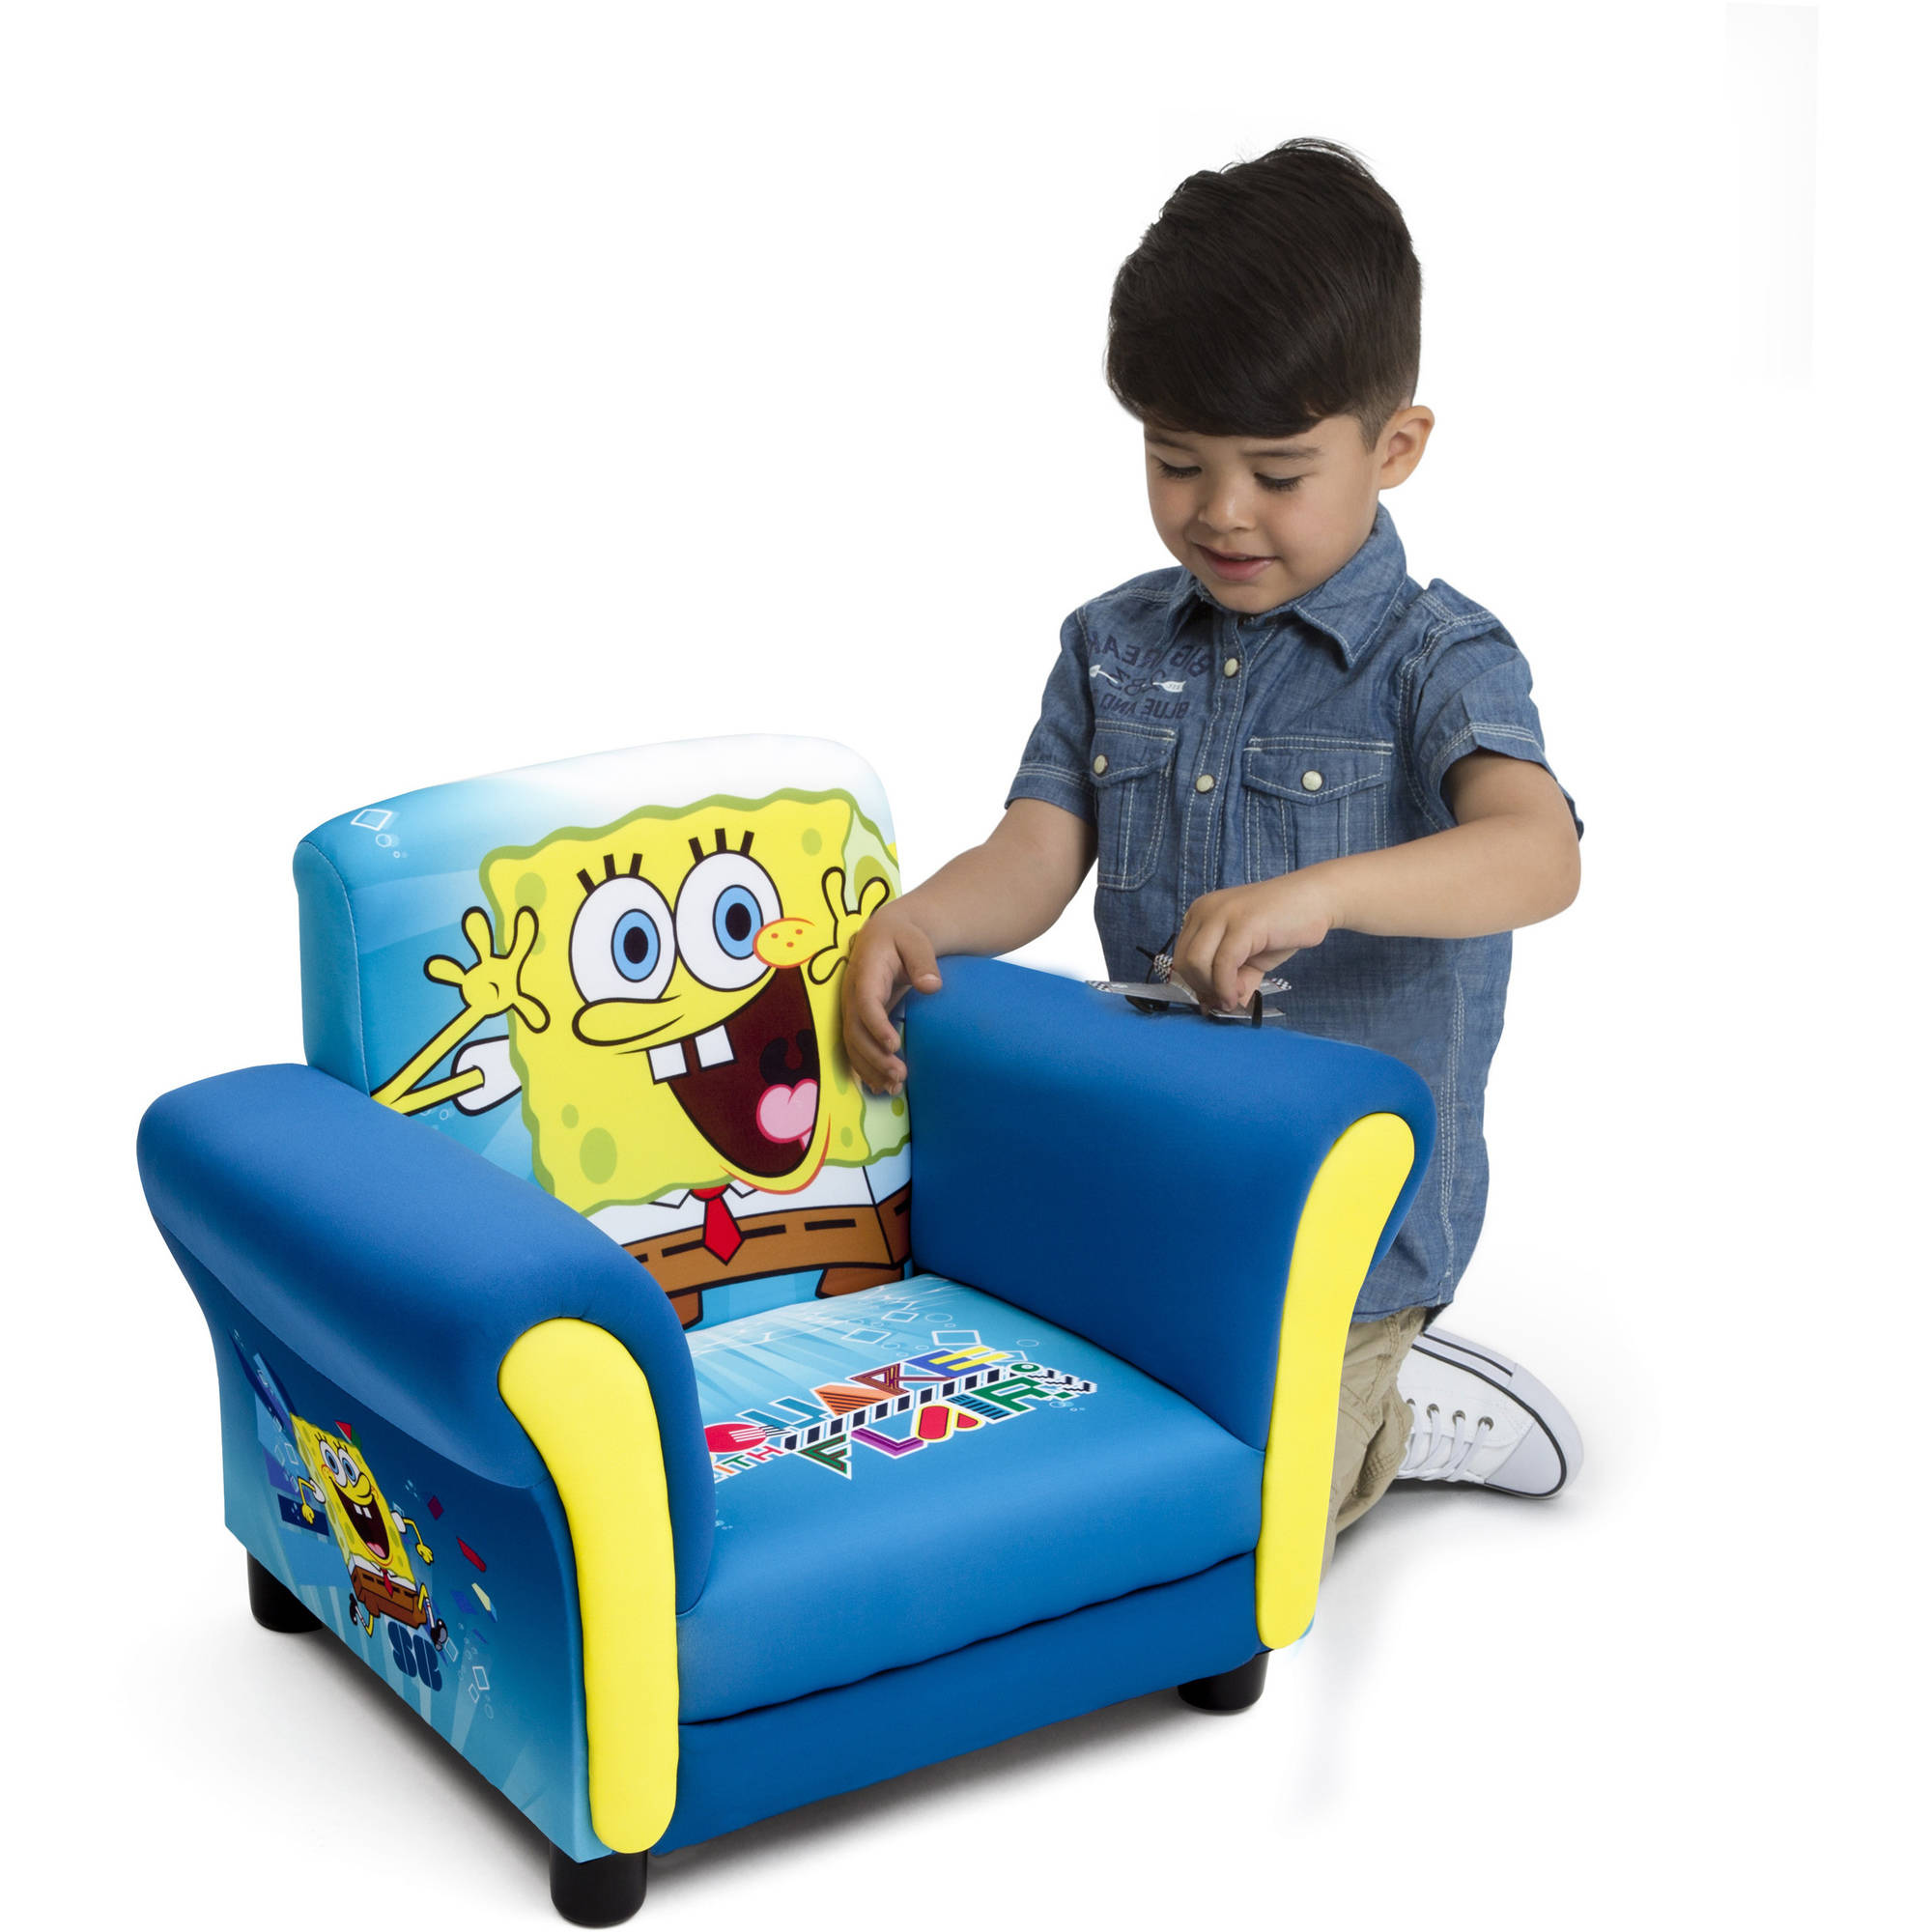 Delta Children's Products Nickelodeon SpongeBob Upholstered Chair